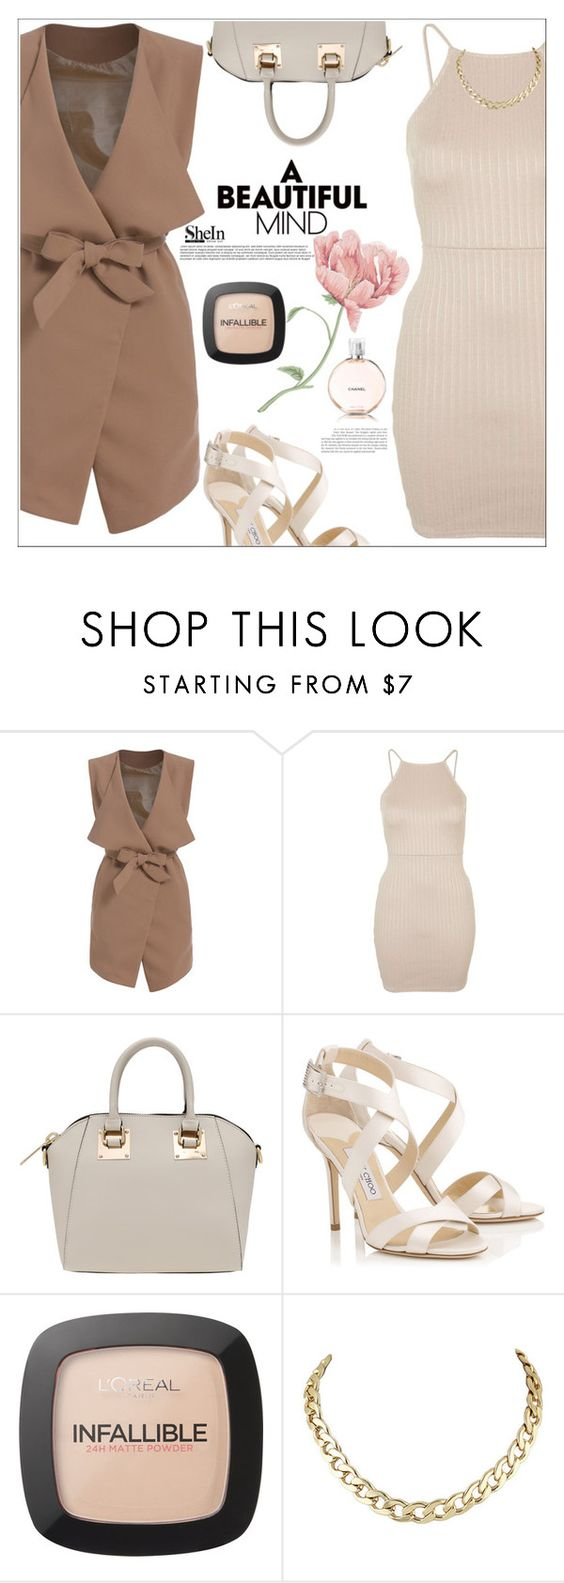 """""""A beautiful mind"""" by mycherryblossom ❤ liked on Polyvore featuring Topshop, Jimmy Choo, L'Oréal Paris and Chanel"""